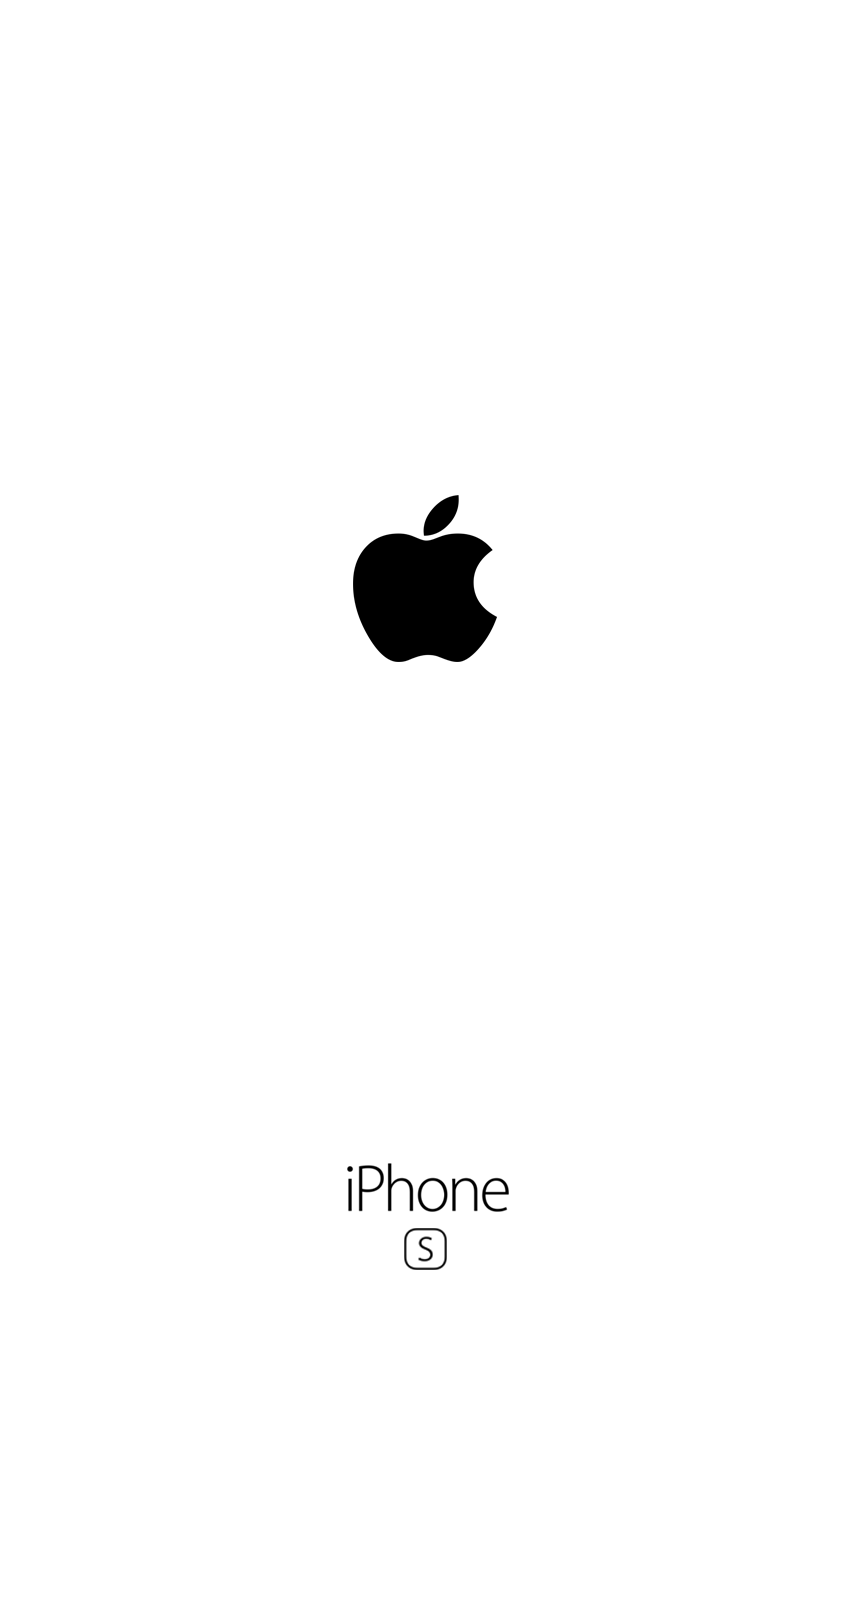 Iphone 6s Wallpaper white logo apple fond d'écran blanc ...